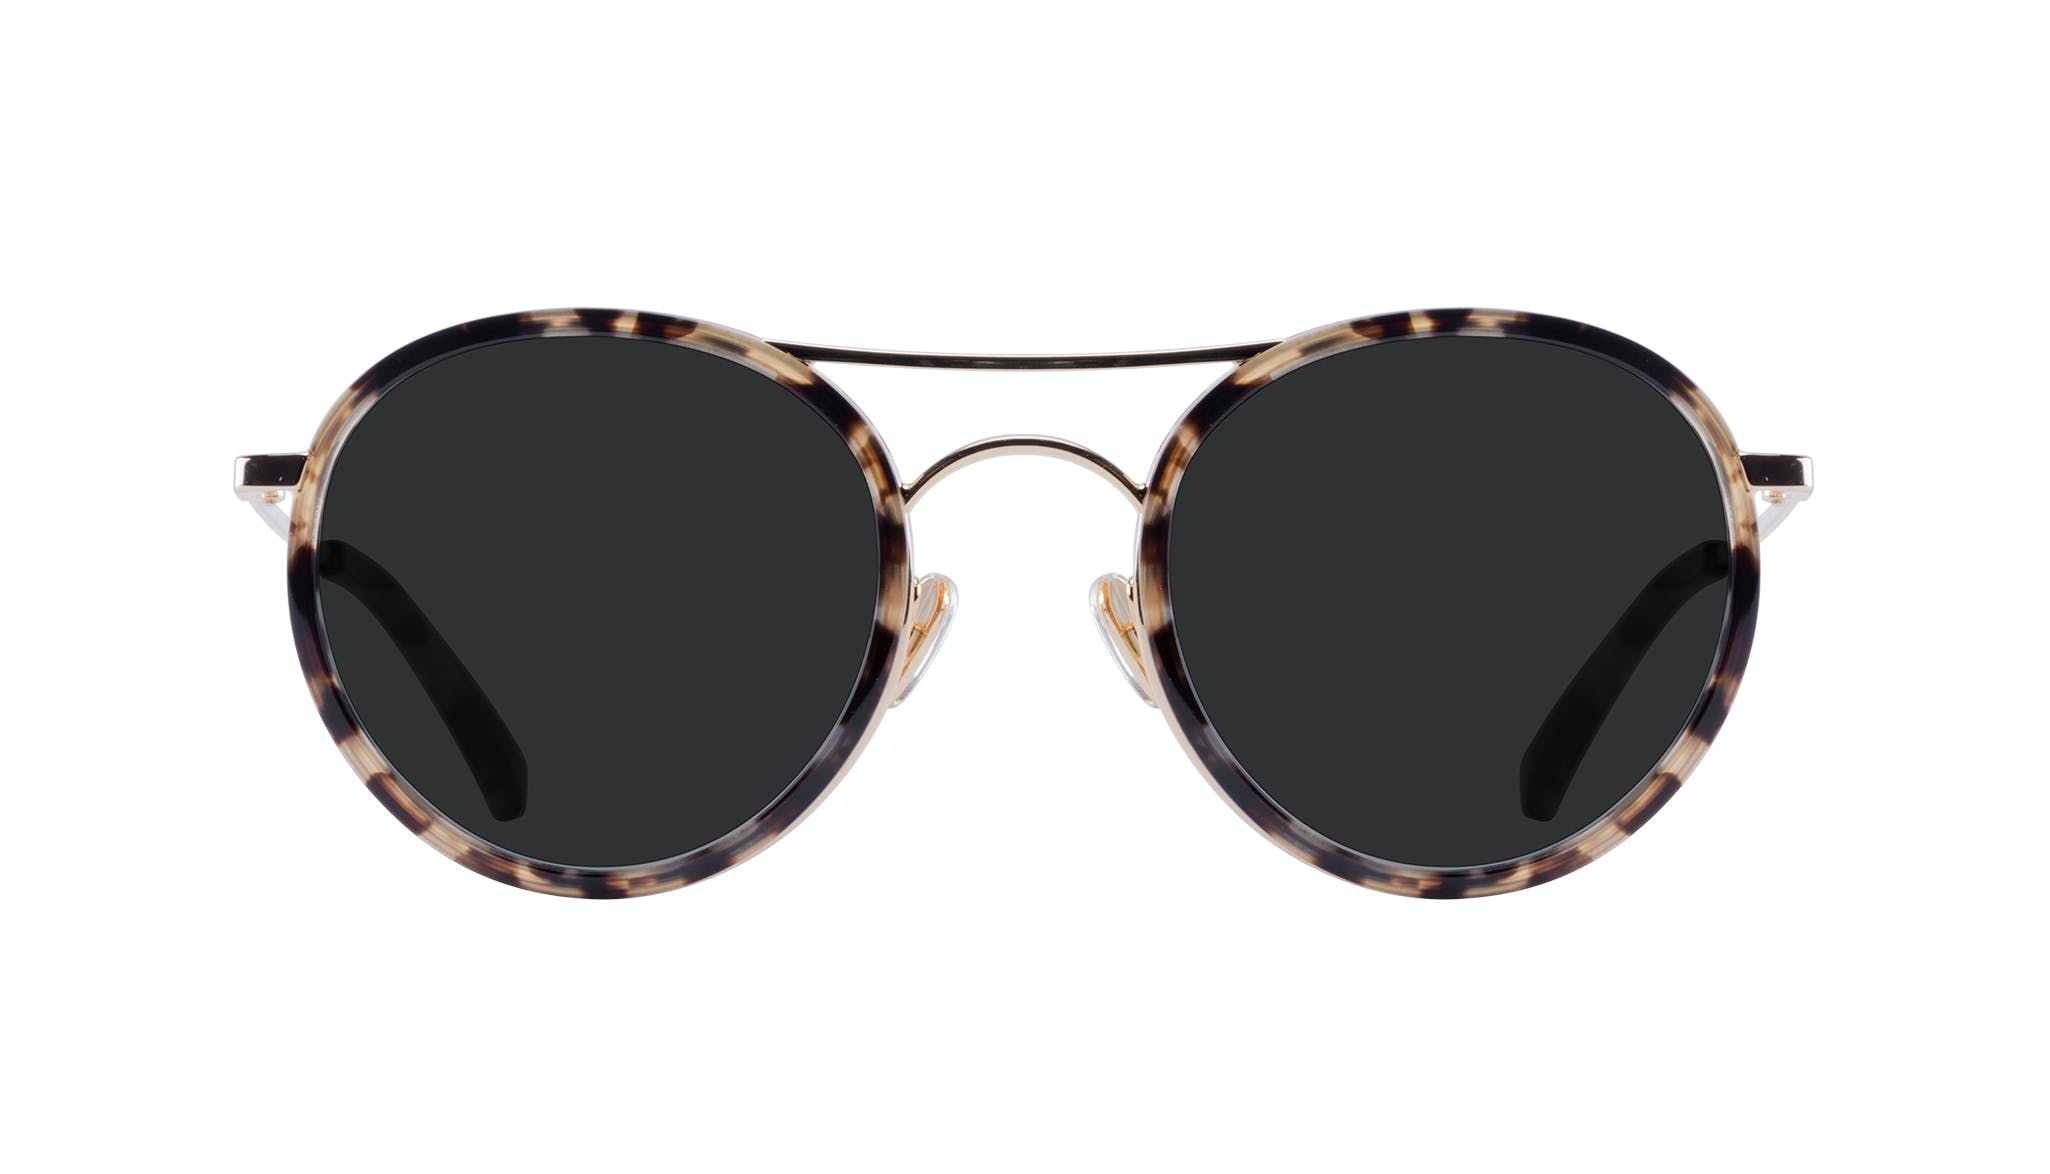 Affordable Fashion Glasses Aviator Round Sunglasses Women Dawn Tortoise